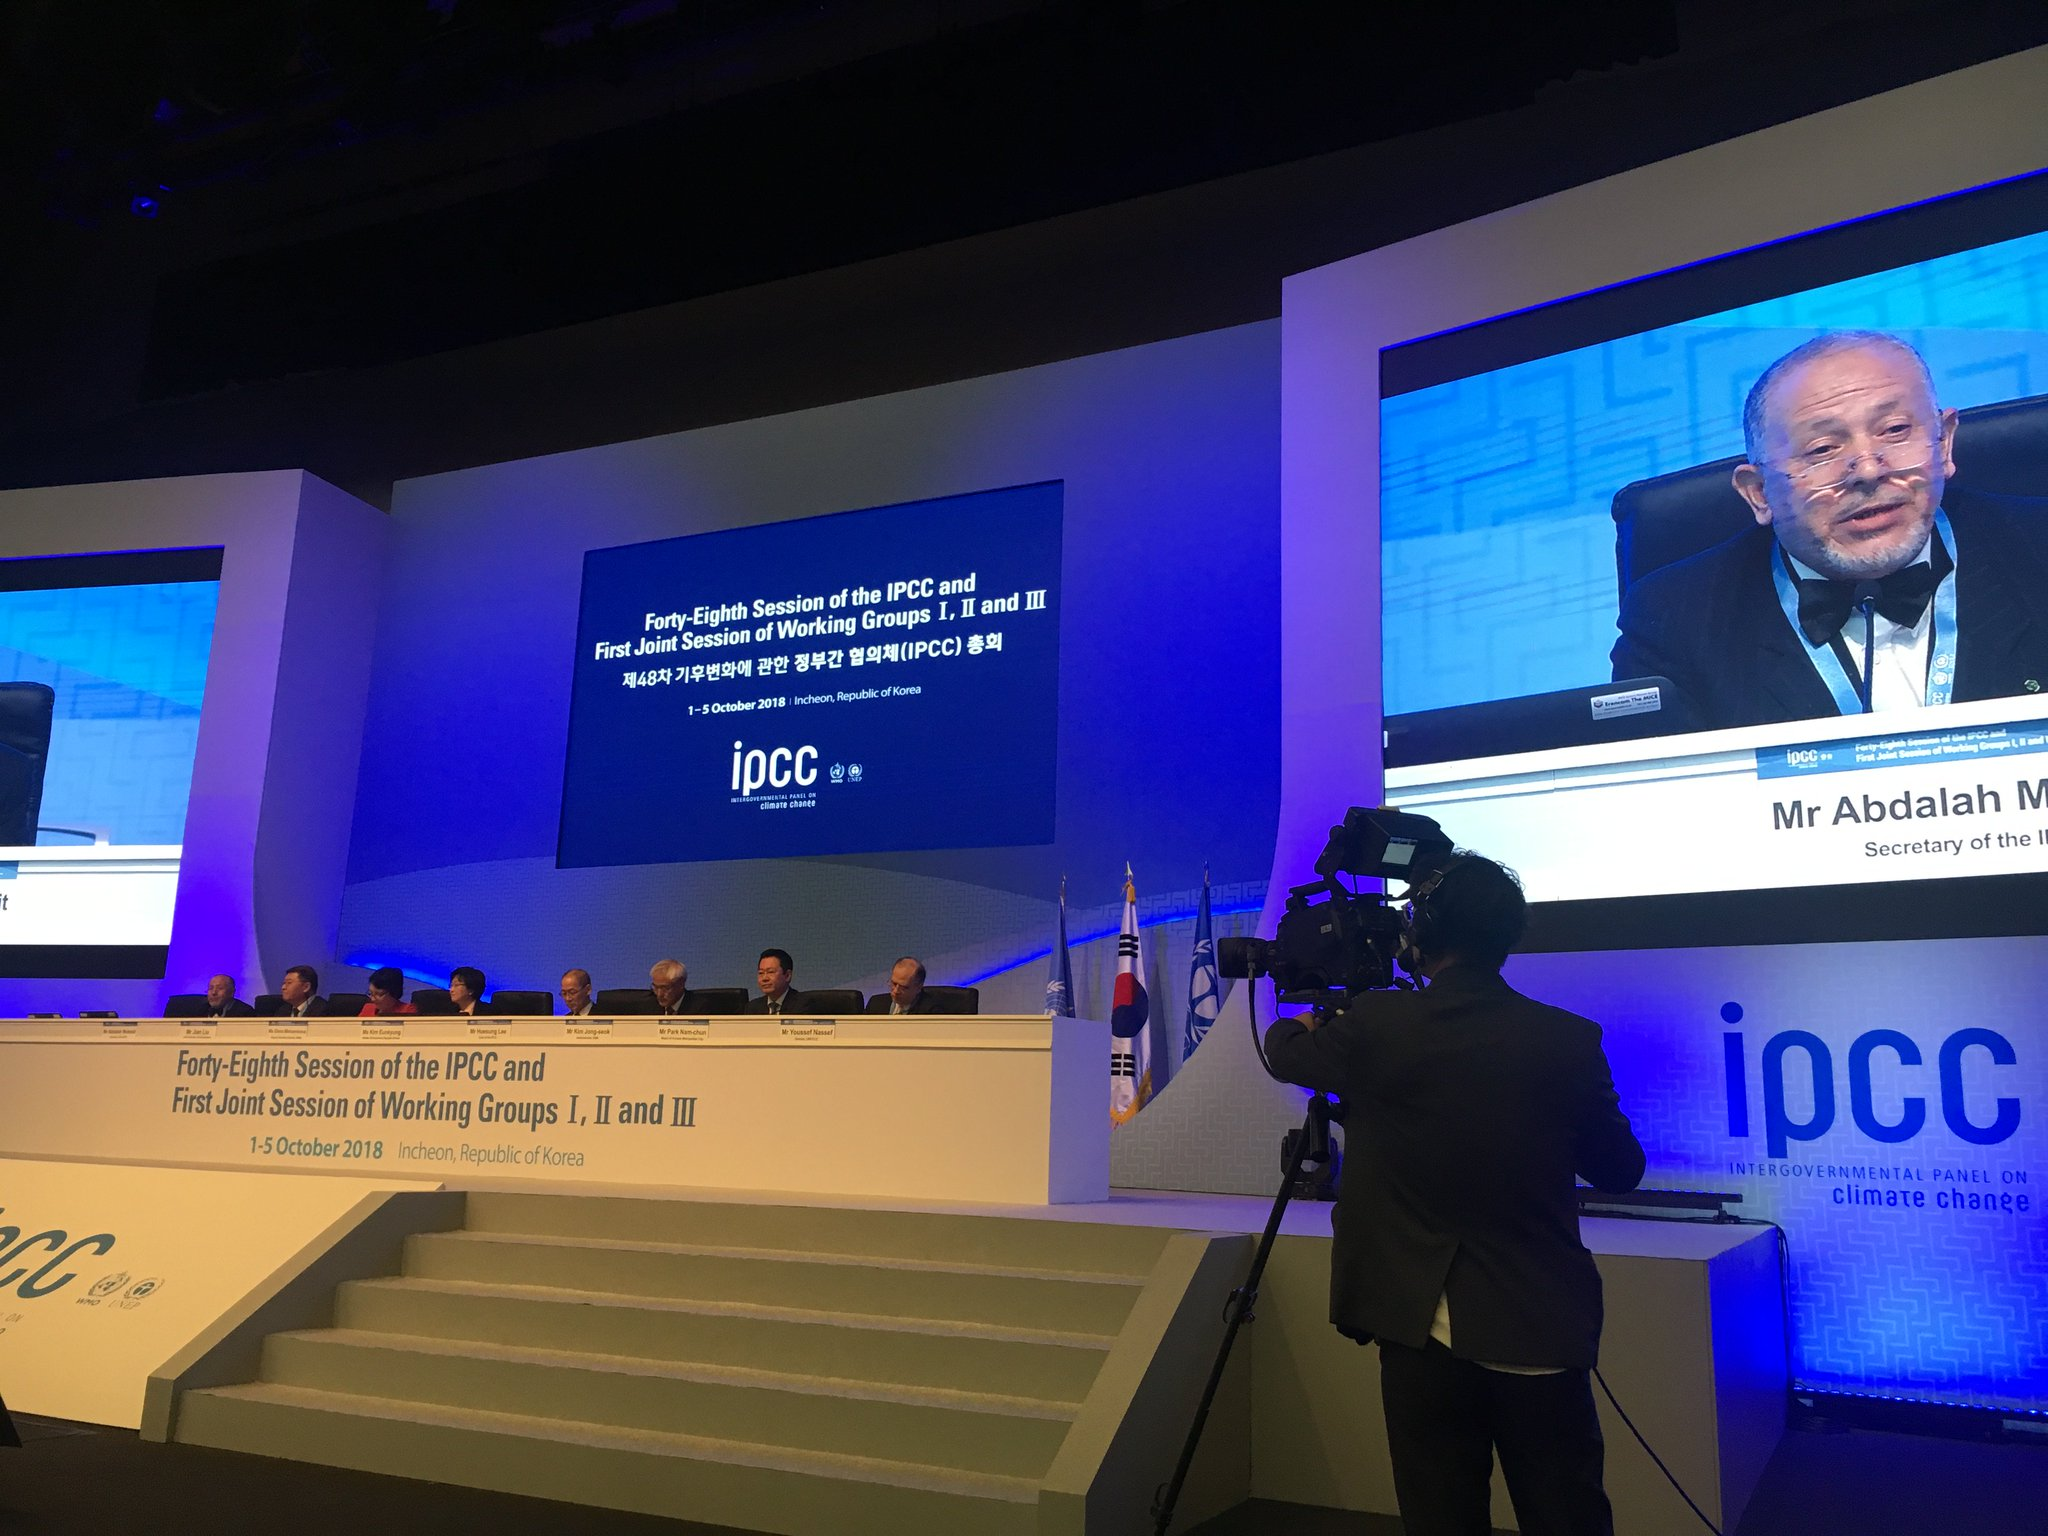 IPCC On Twitter Opening Ceremony Of 48th Session In The Republic Korea SR15 MOEKorea Kma Weather WMO UNEnvironment UNFCCC